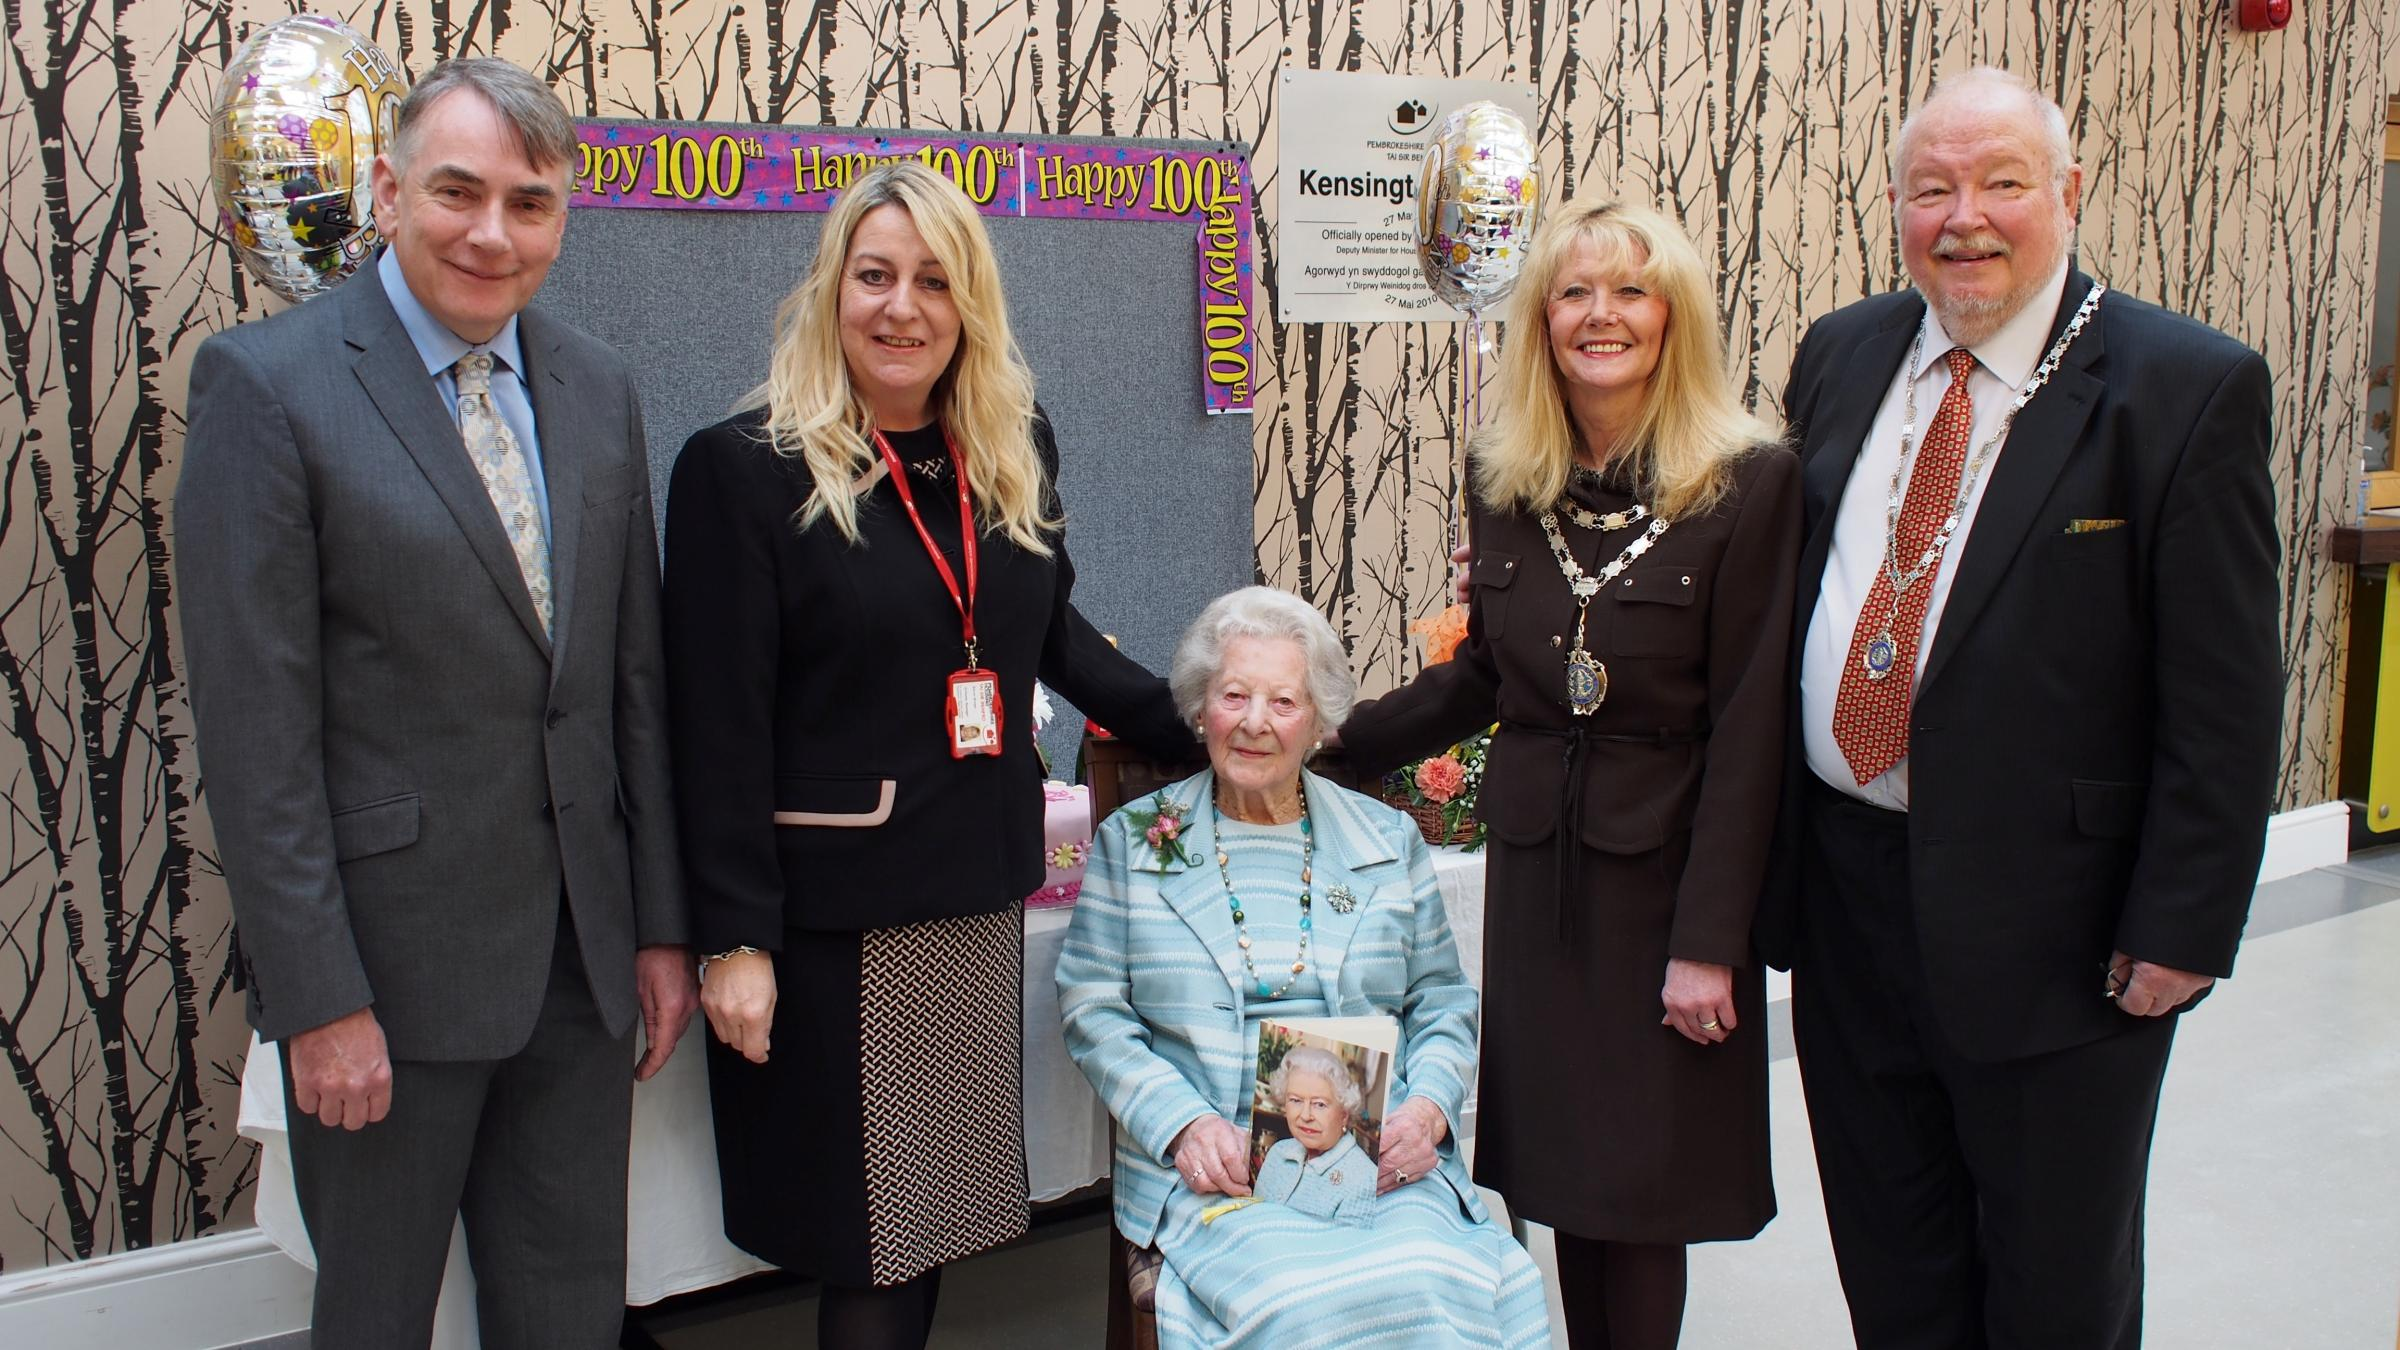 CELEBRATING 100 YEARS: Graham Holmes, Pembrokeshire Housing Karen Brown, Kensington Court scheme manager, Miss Nancy Llewellyn, Mayor Cllr Yvonne Southwell, and Mayor's consort Ron Southwell. PICTURE: Milford Mercury. (5025787)